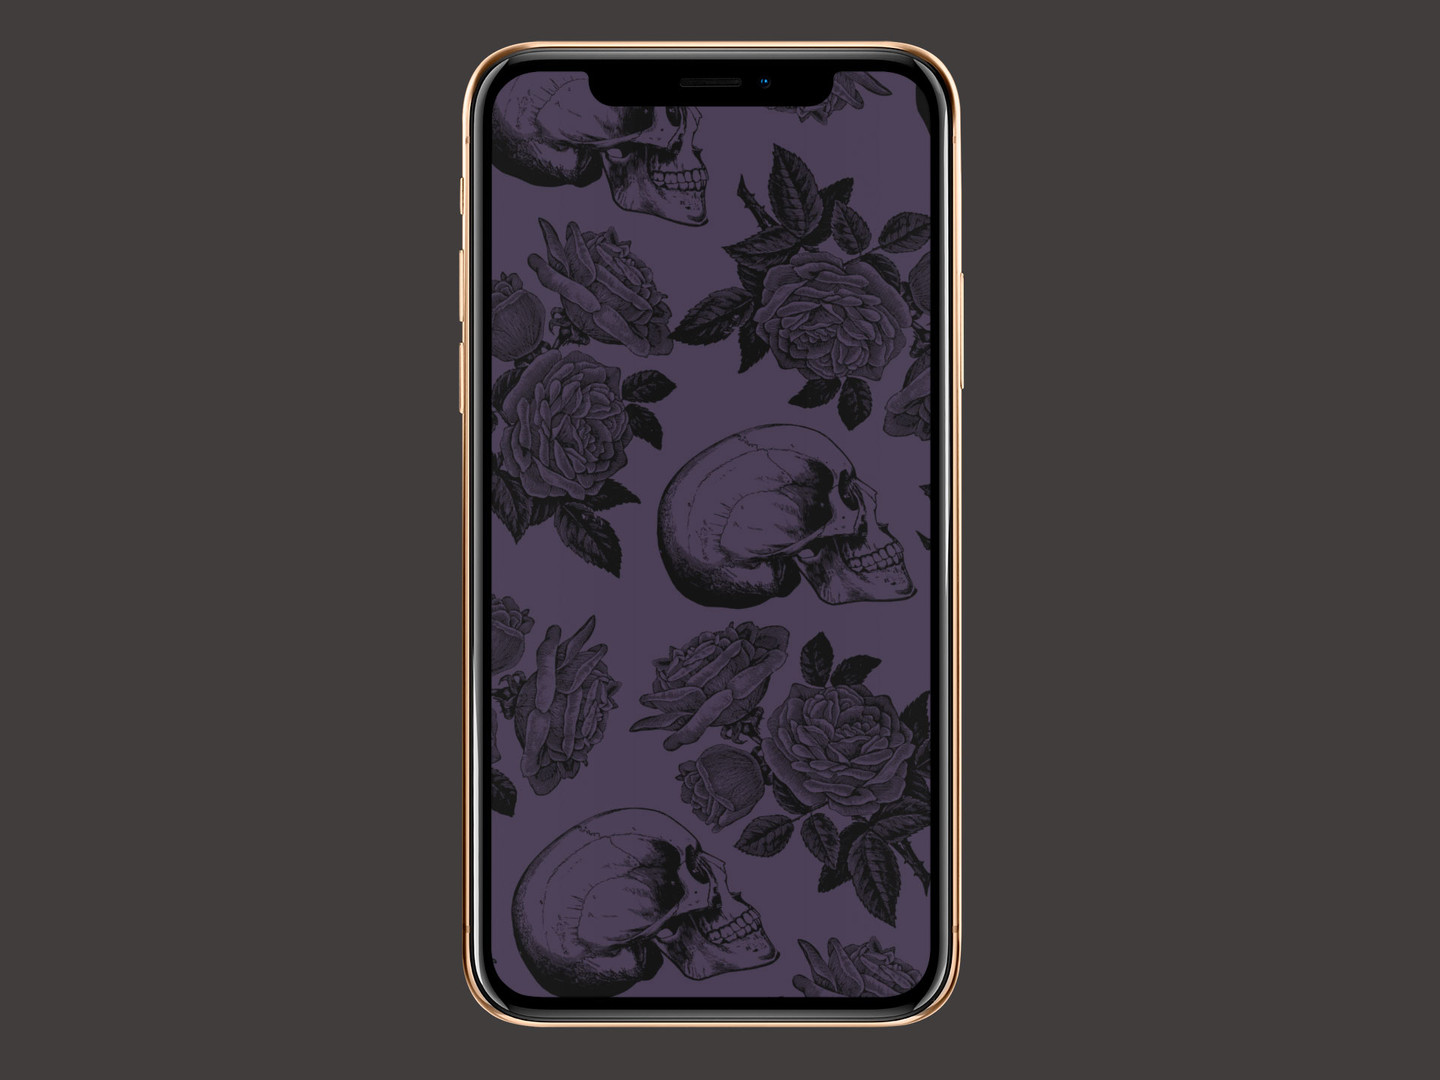 Free Goth Aesthetic Phone Wallpaper Skulls And Roses